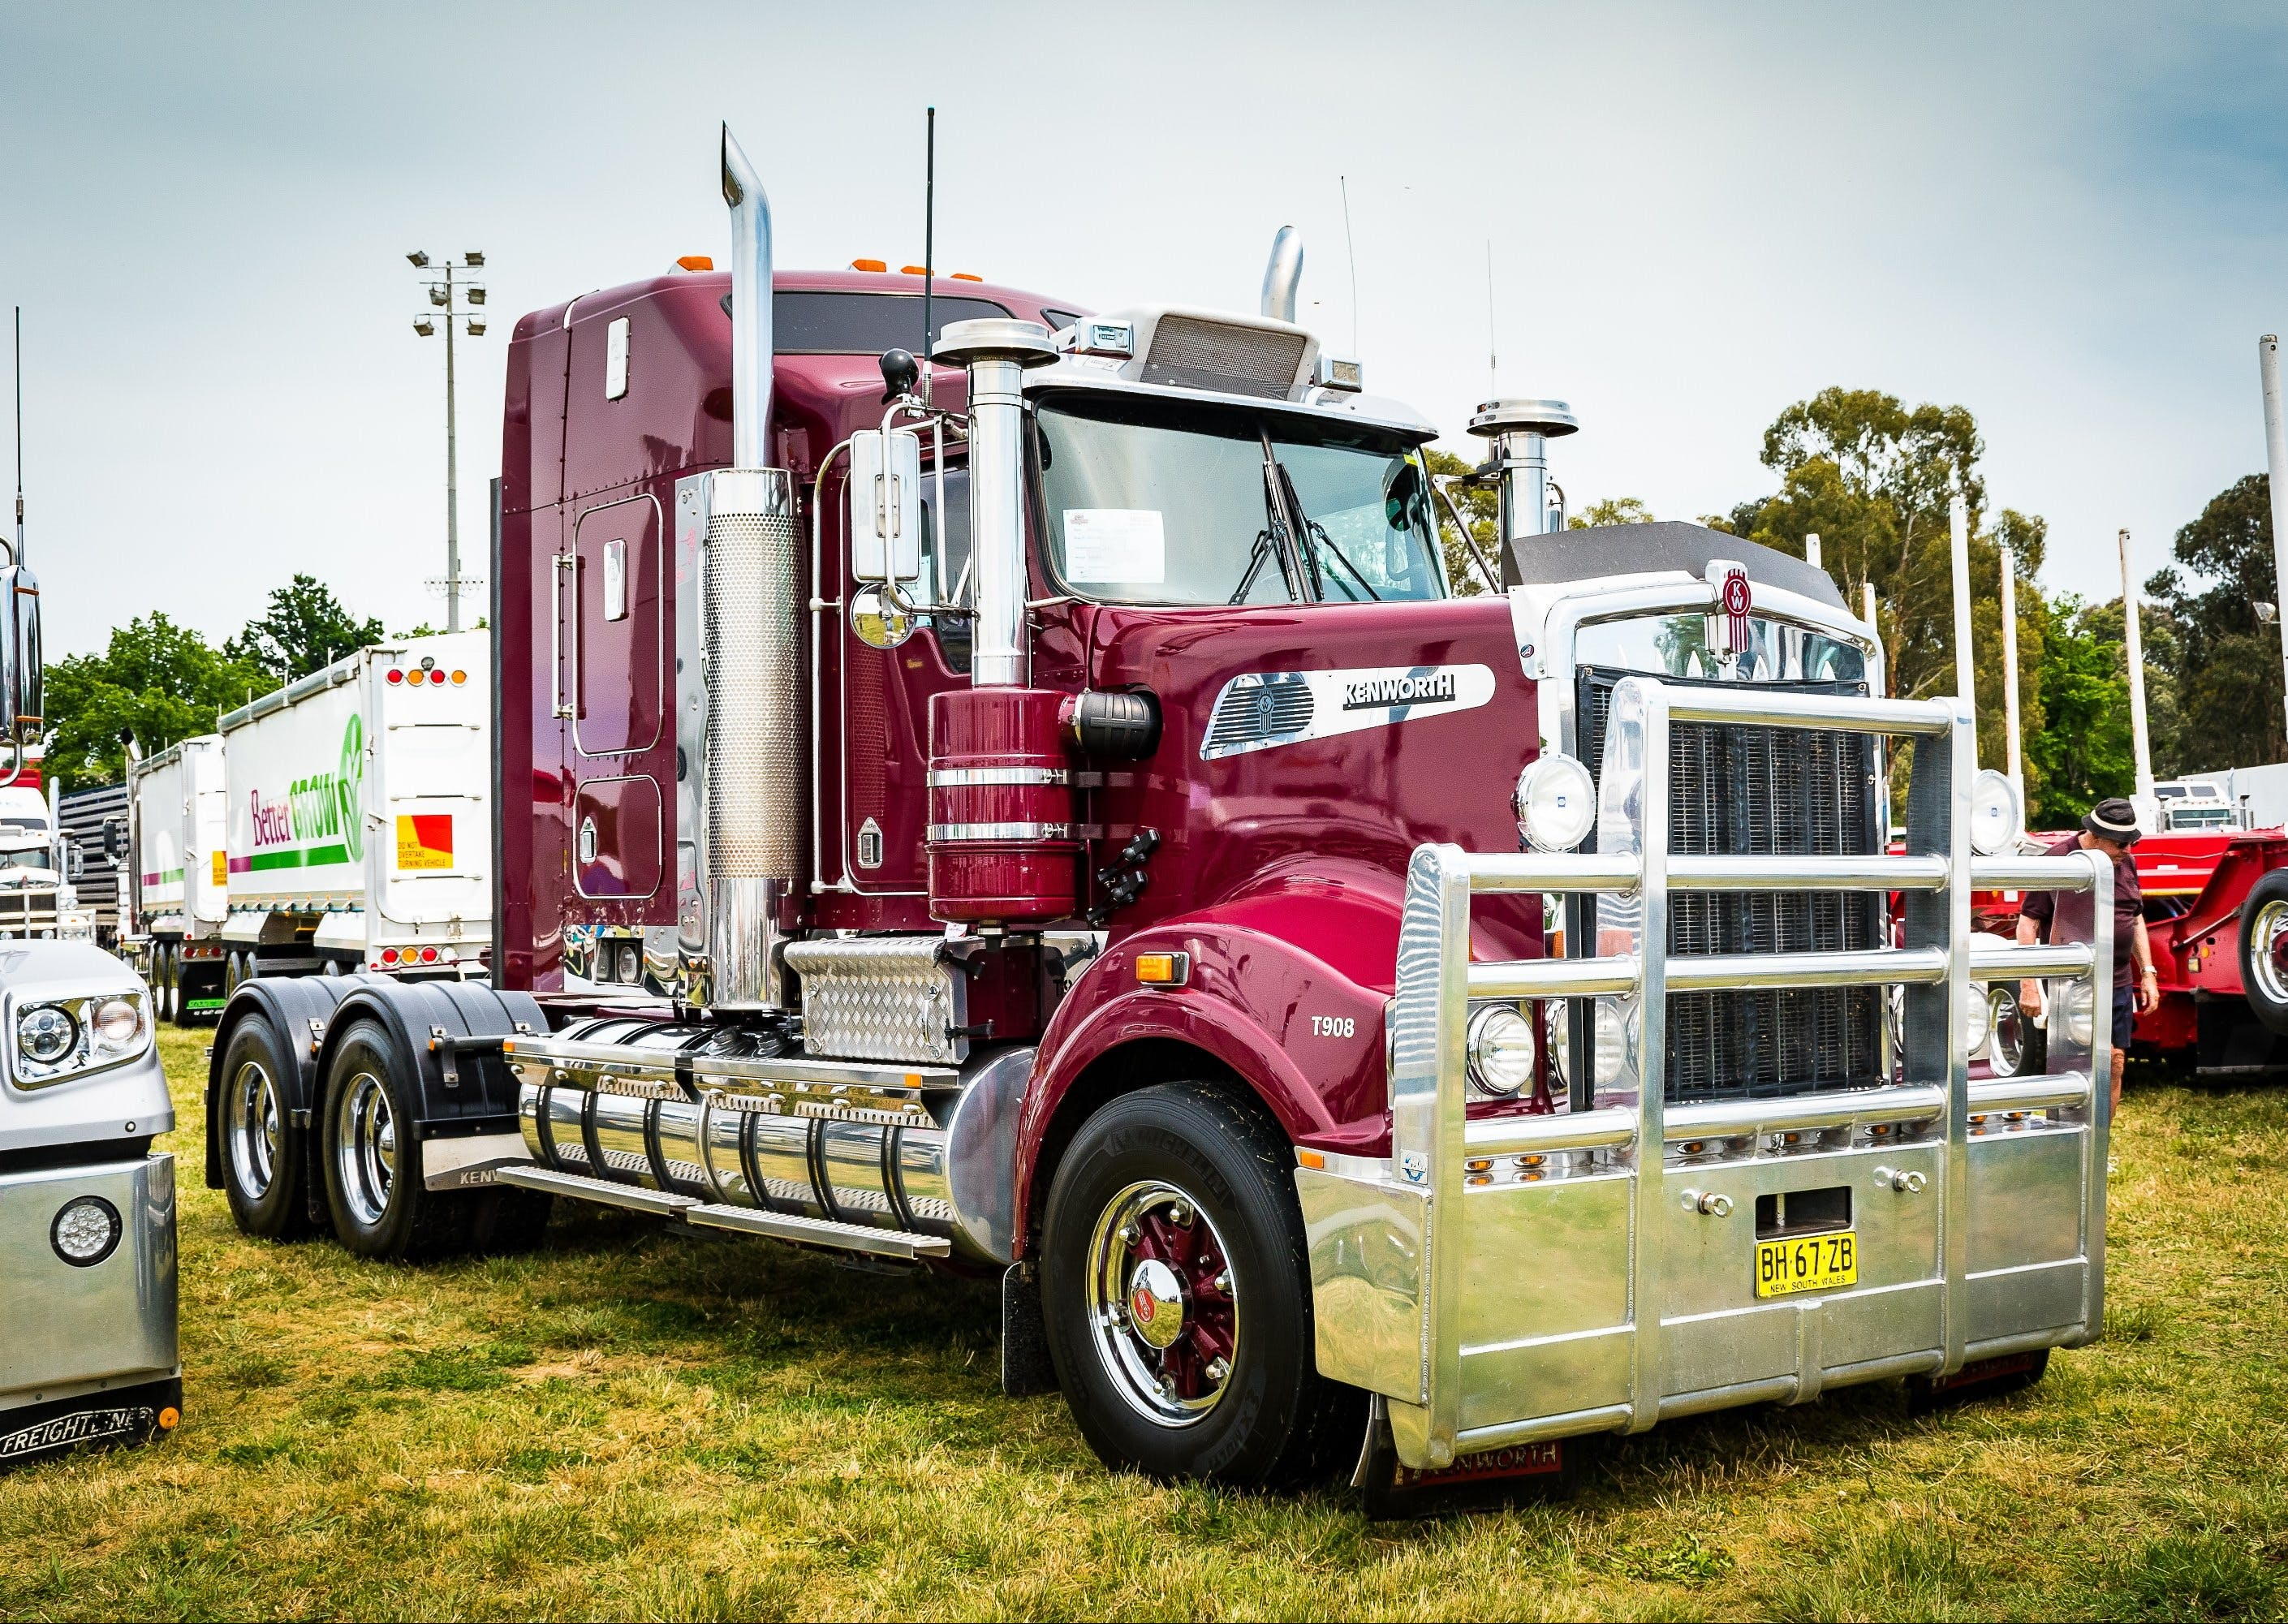 Dane Ballinger Memorial Truck Show - Stayed